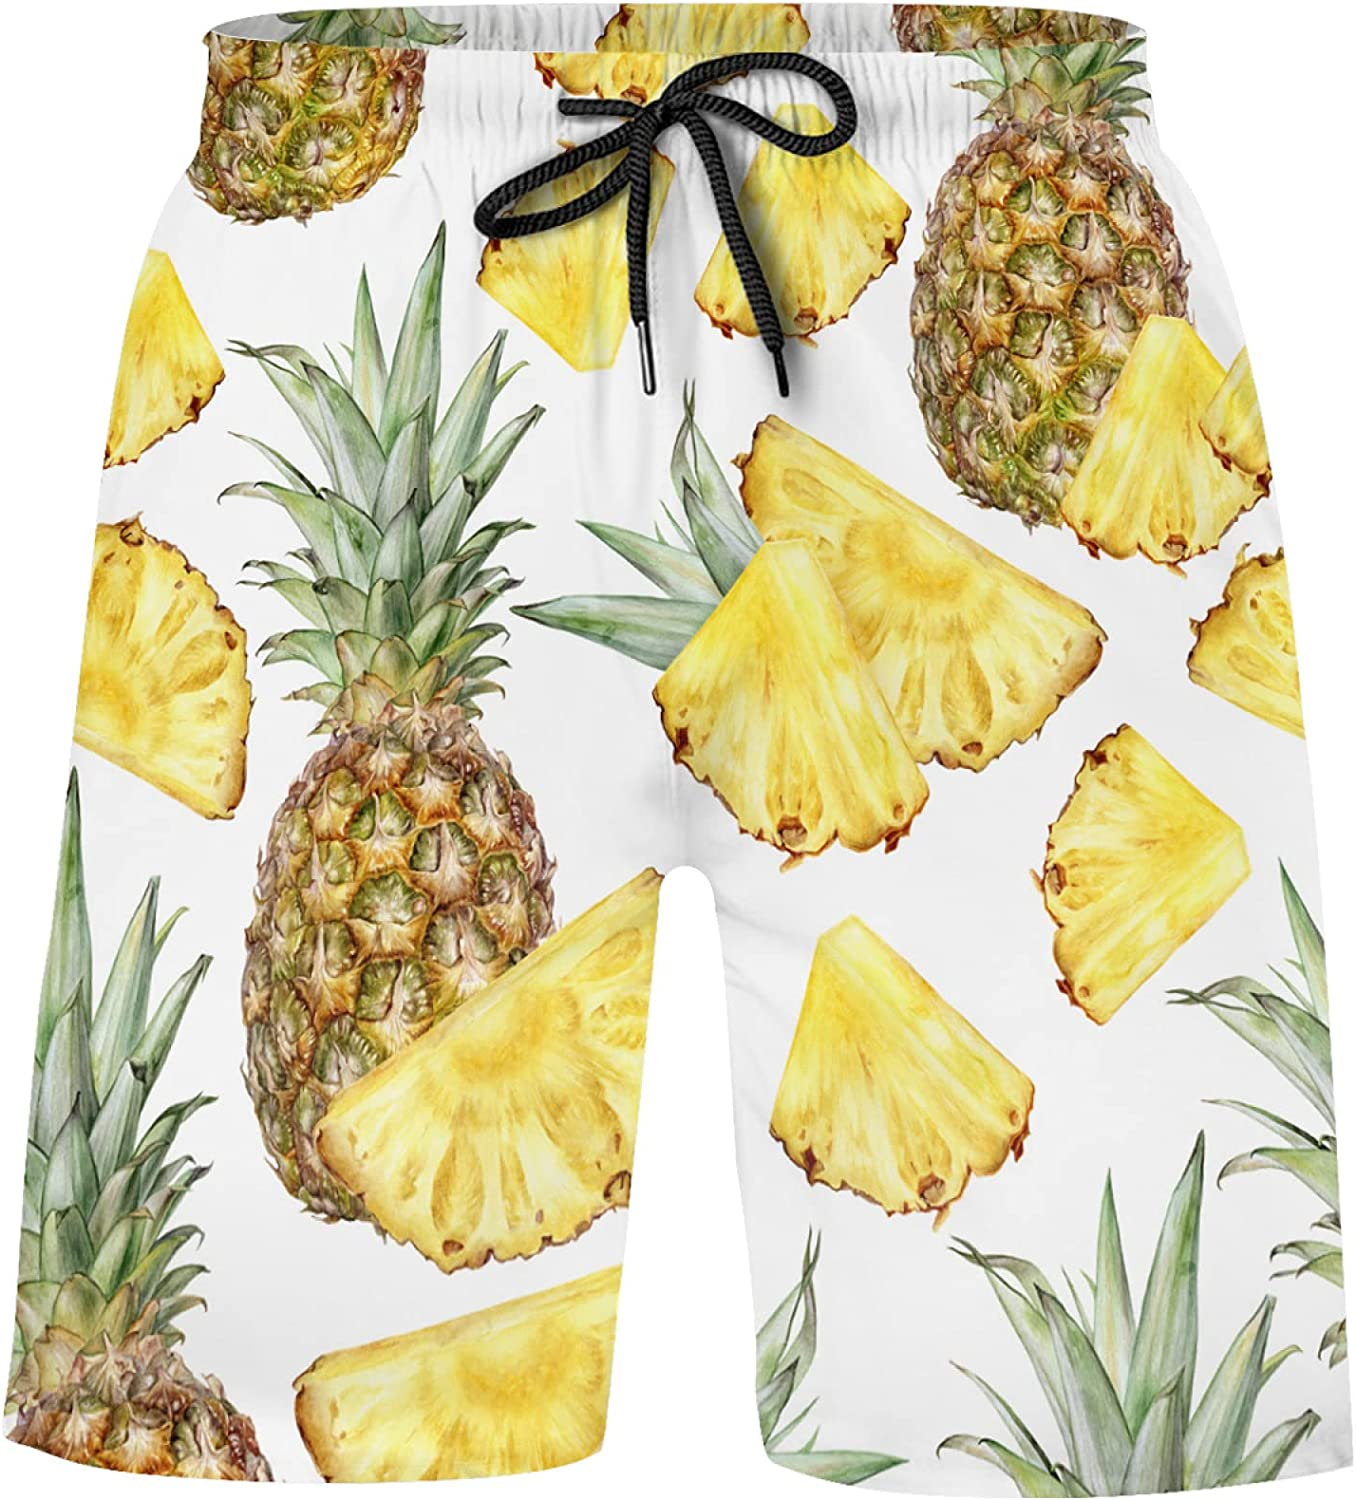 Watercolor Pineapple On White Bathing Suits Athletic Shorts Swim Trunks for Kids Boy